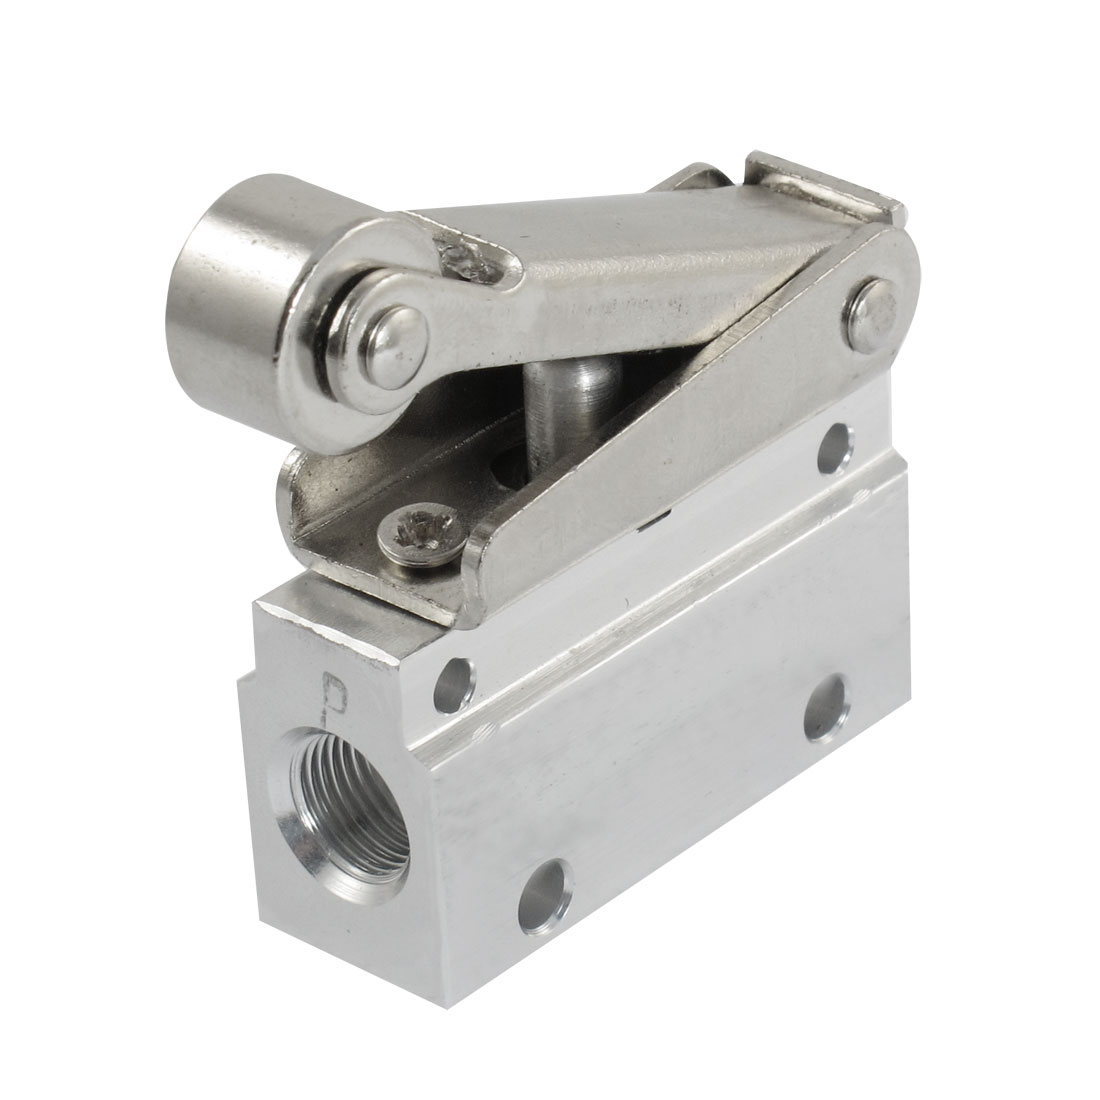 MOV-02 8.5mm 2 Position 3 Way Roller Lever Mechanical Valve